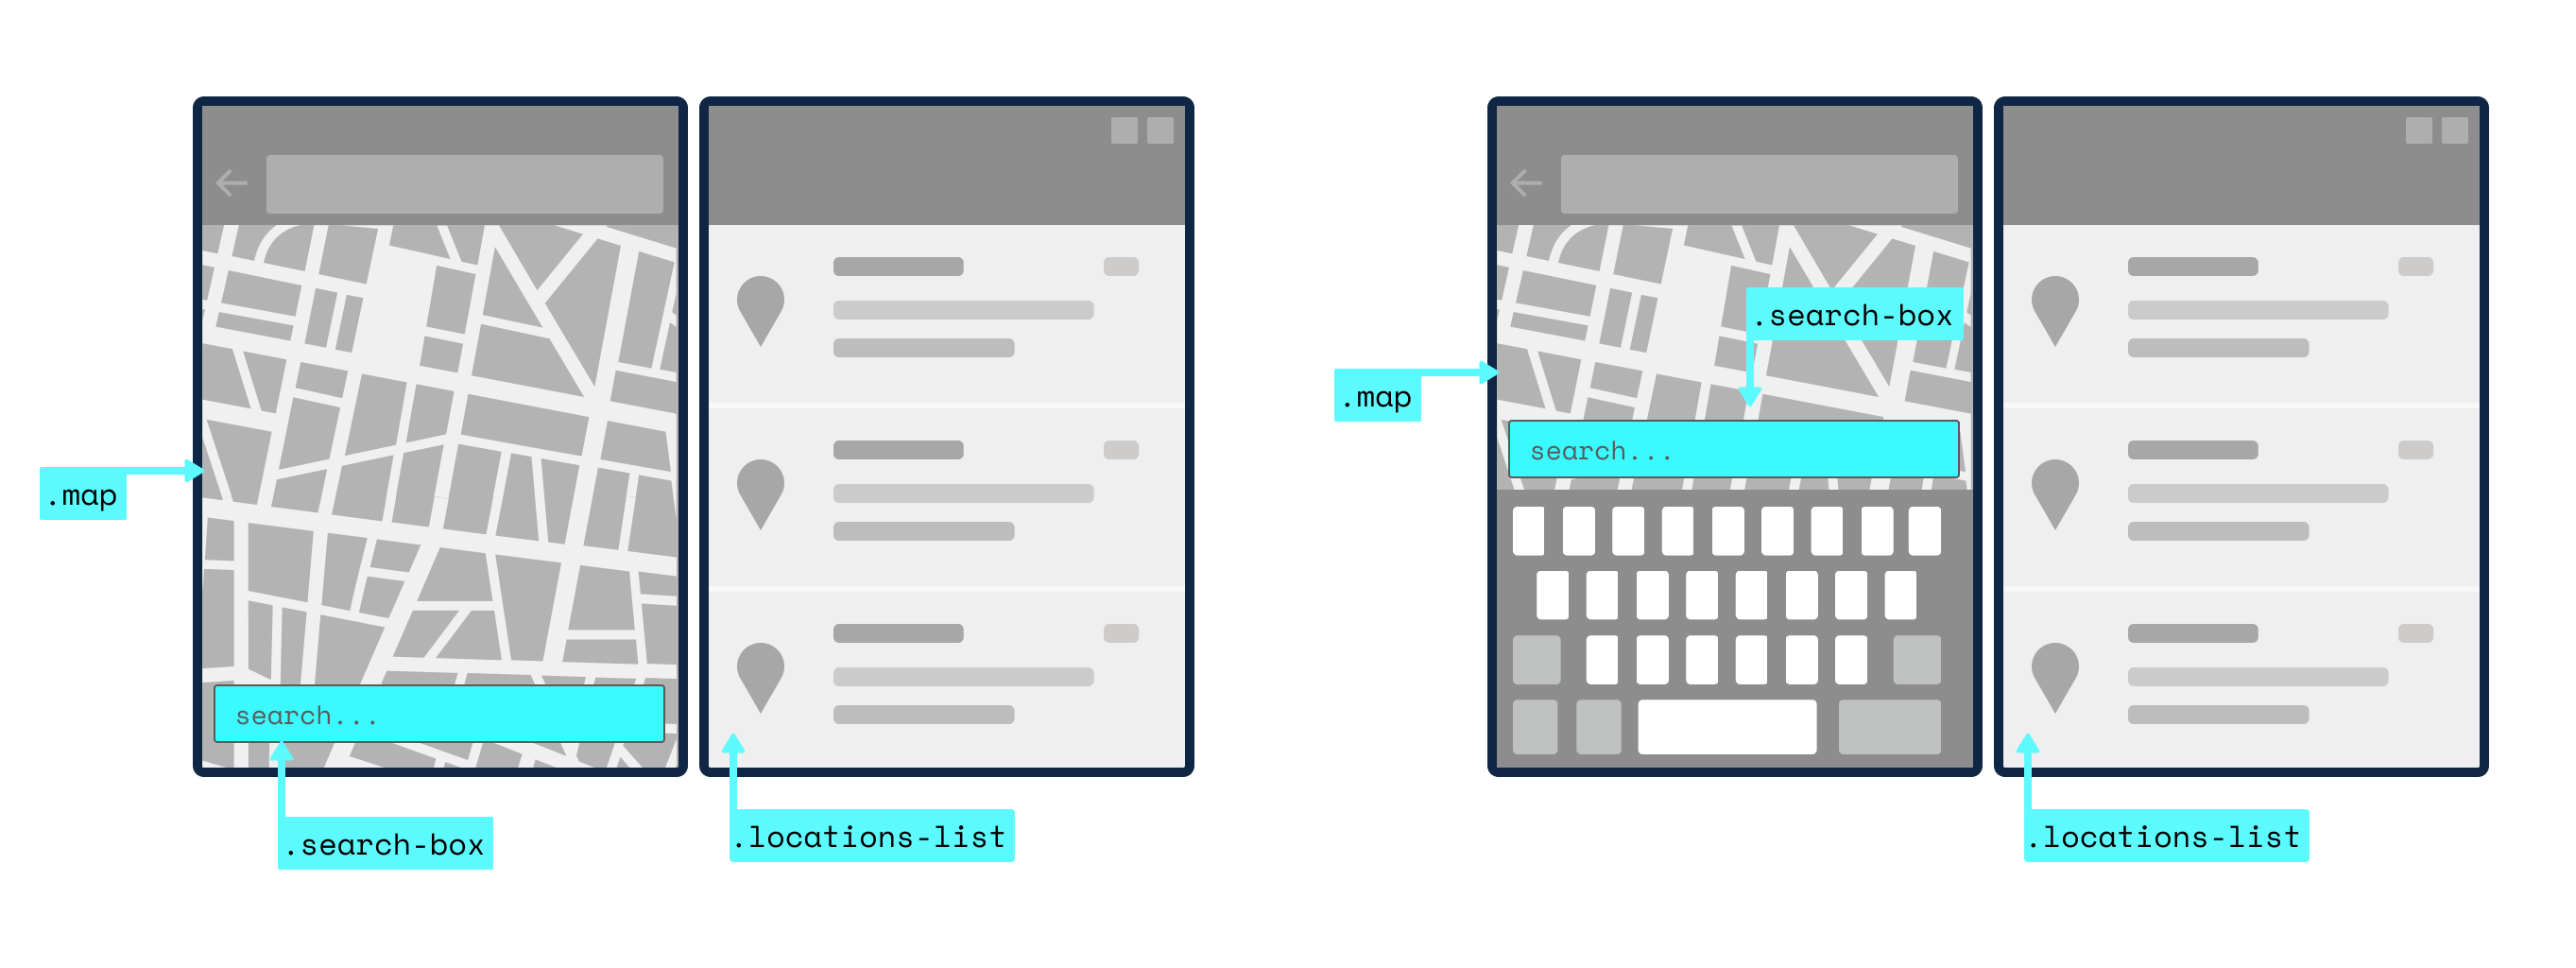 """The traditional approach results in """"wasted"""" screen real estate if the virtual keyboard is displayed on just one screen segment of a multi-screen device, but where the available viewport is shrunk on both screens nonetheless."""